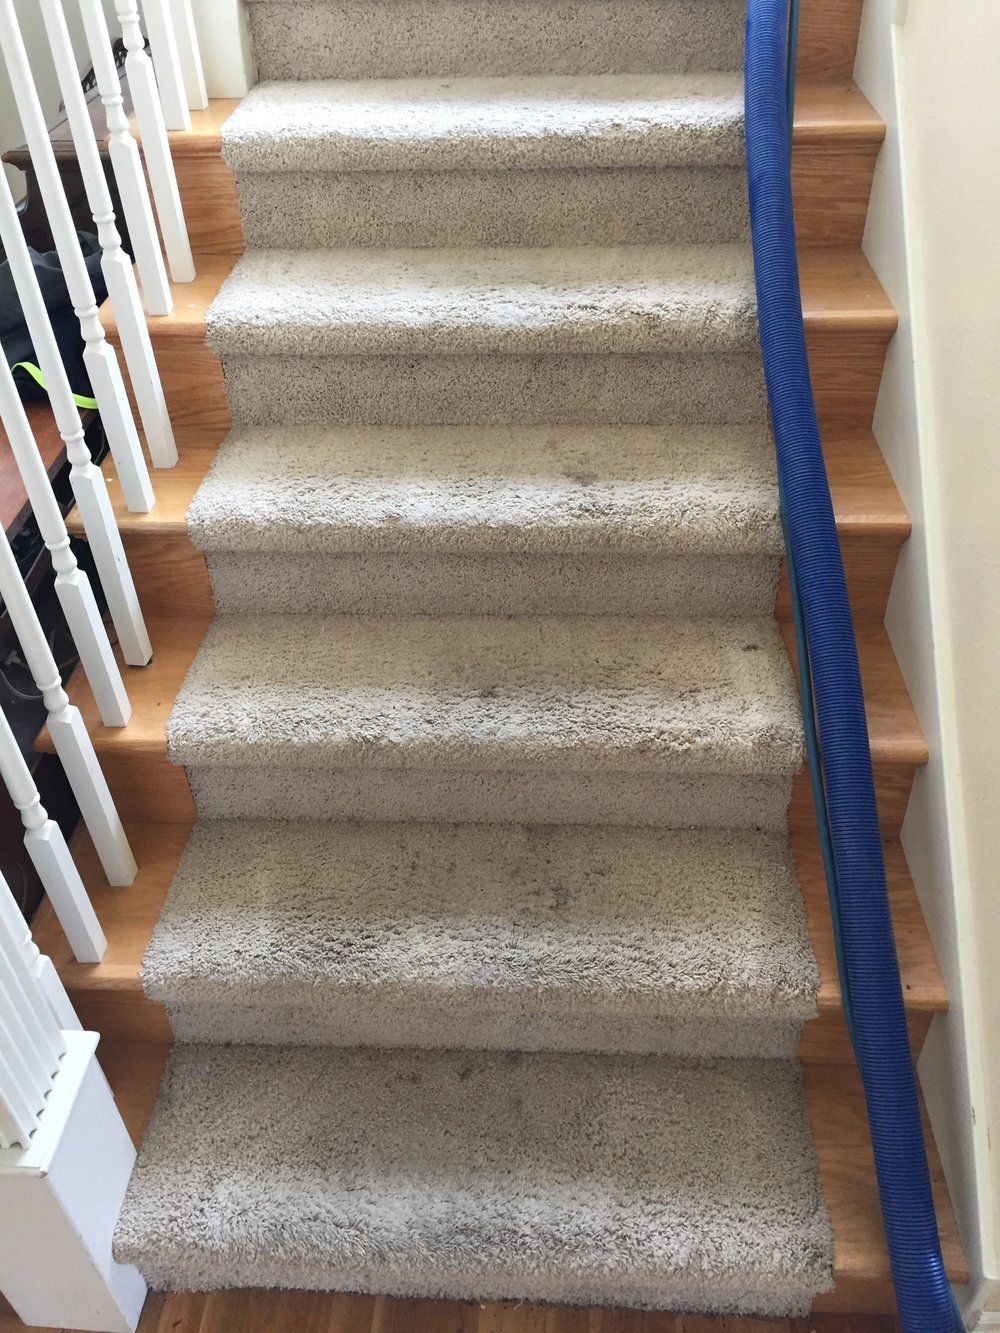 Edmonds carpet cleaning stairs